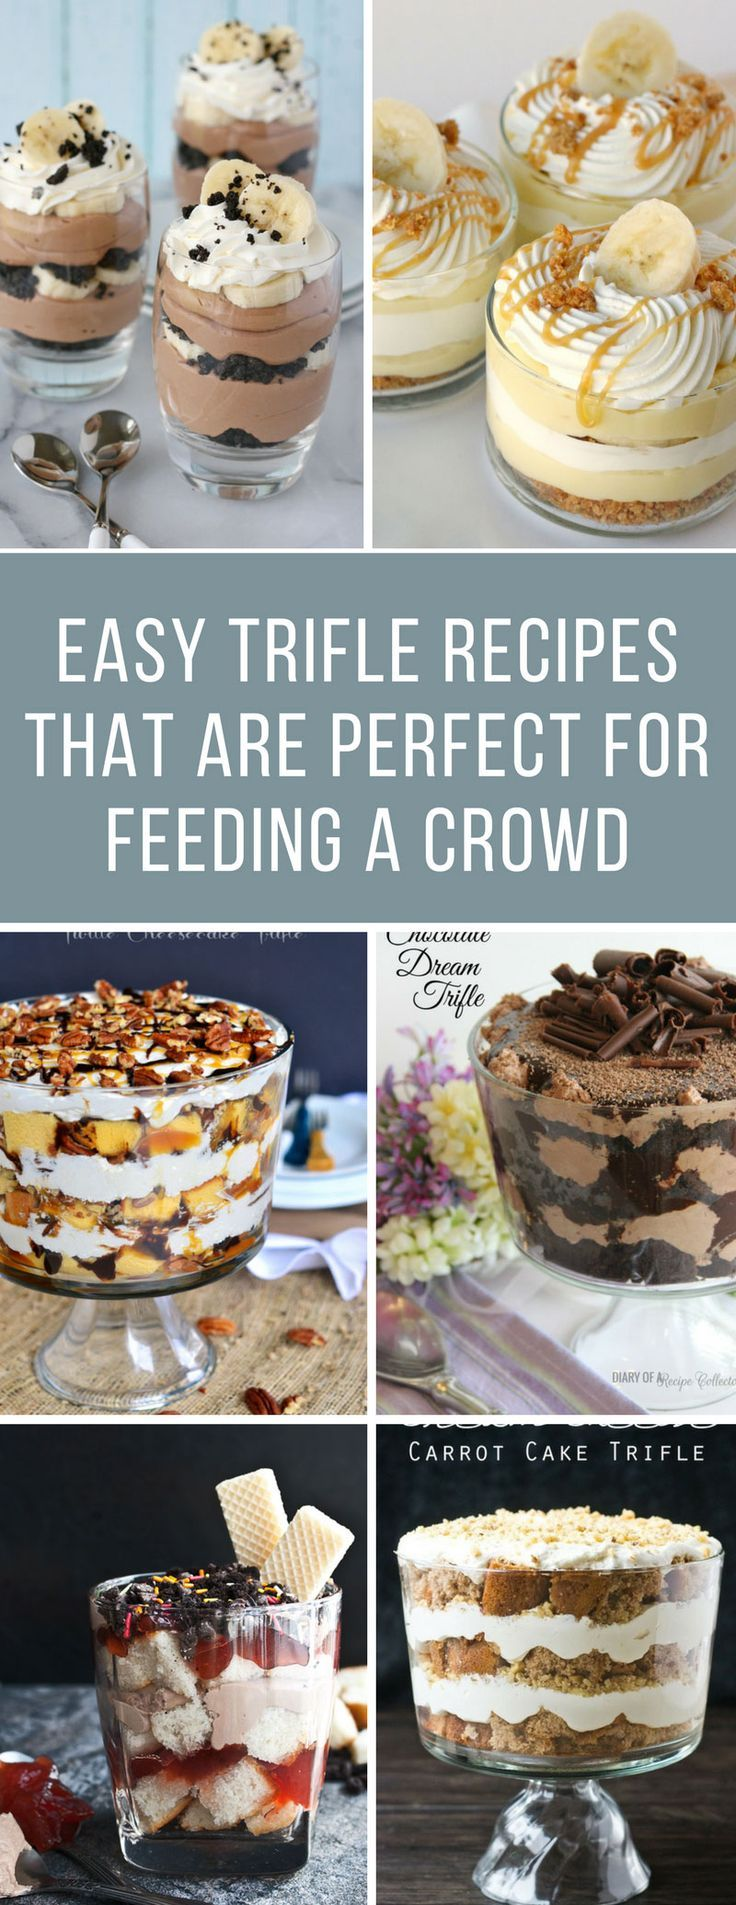 Easy Trifle Recipes for a Crowd - These trifles are delicious and are perfect for Christmas gatherings - and even book clubs and pot luck too! #trifle #recipes #christmas